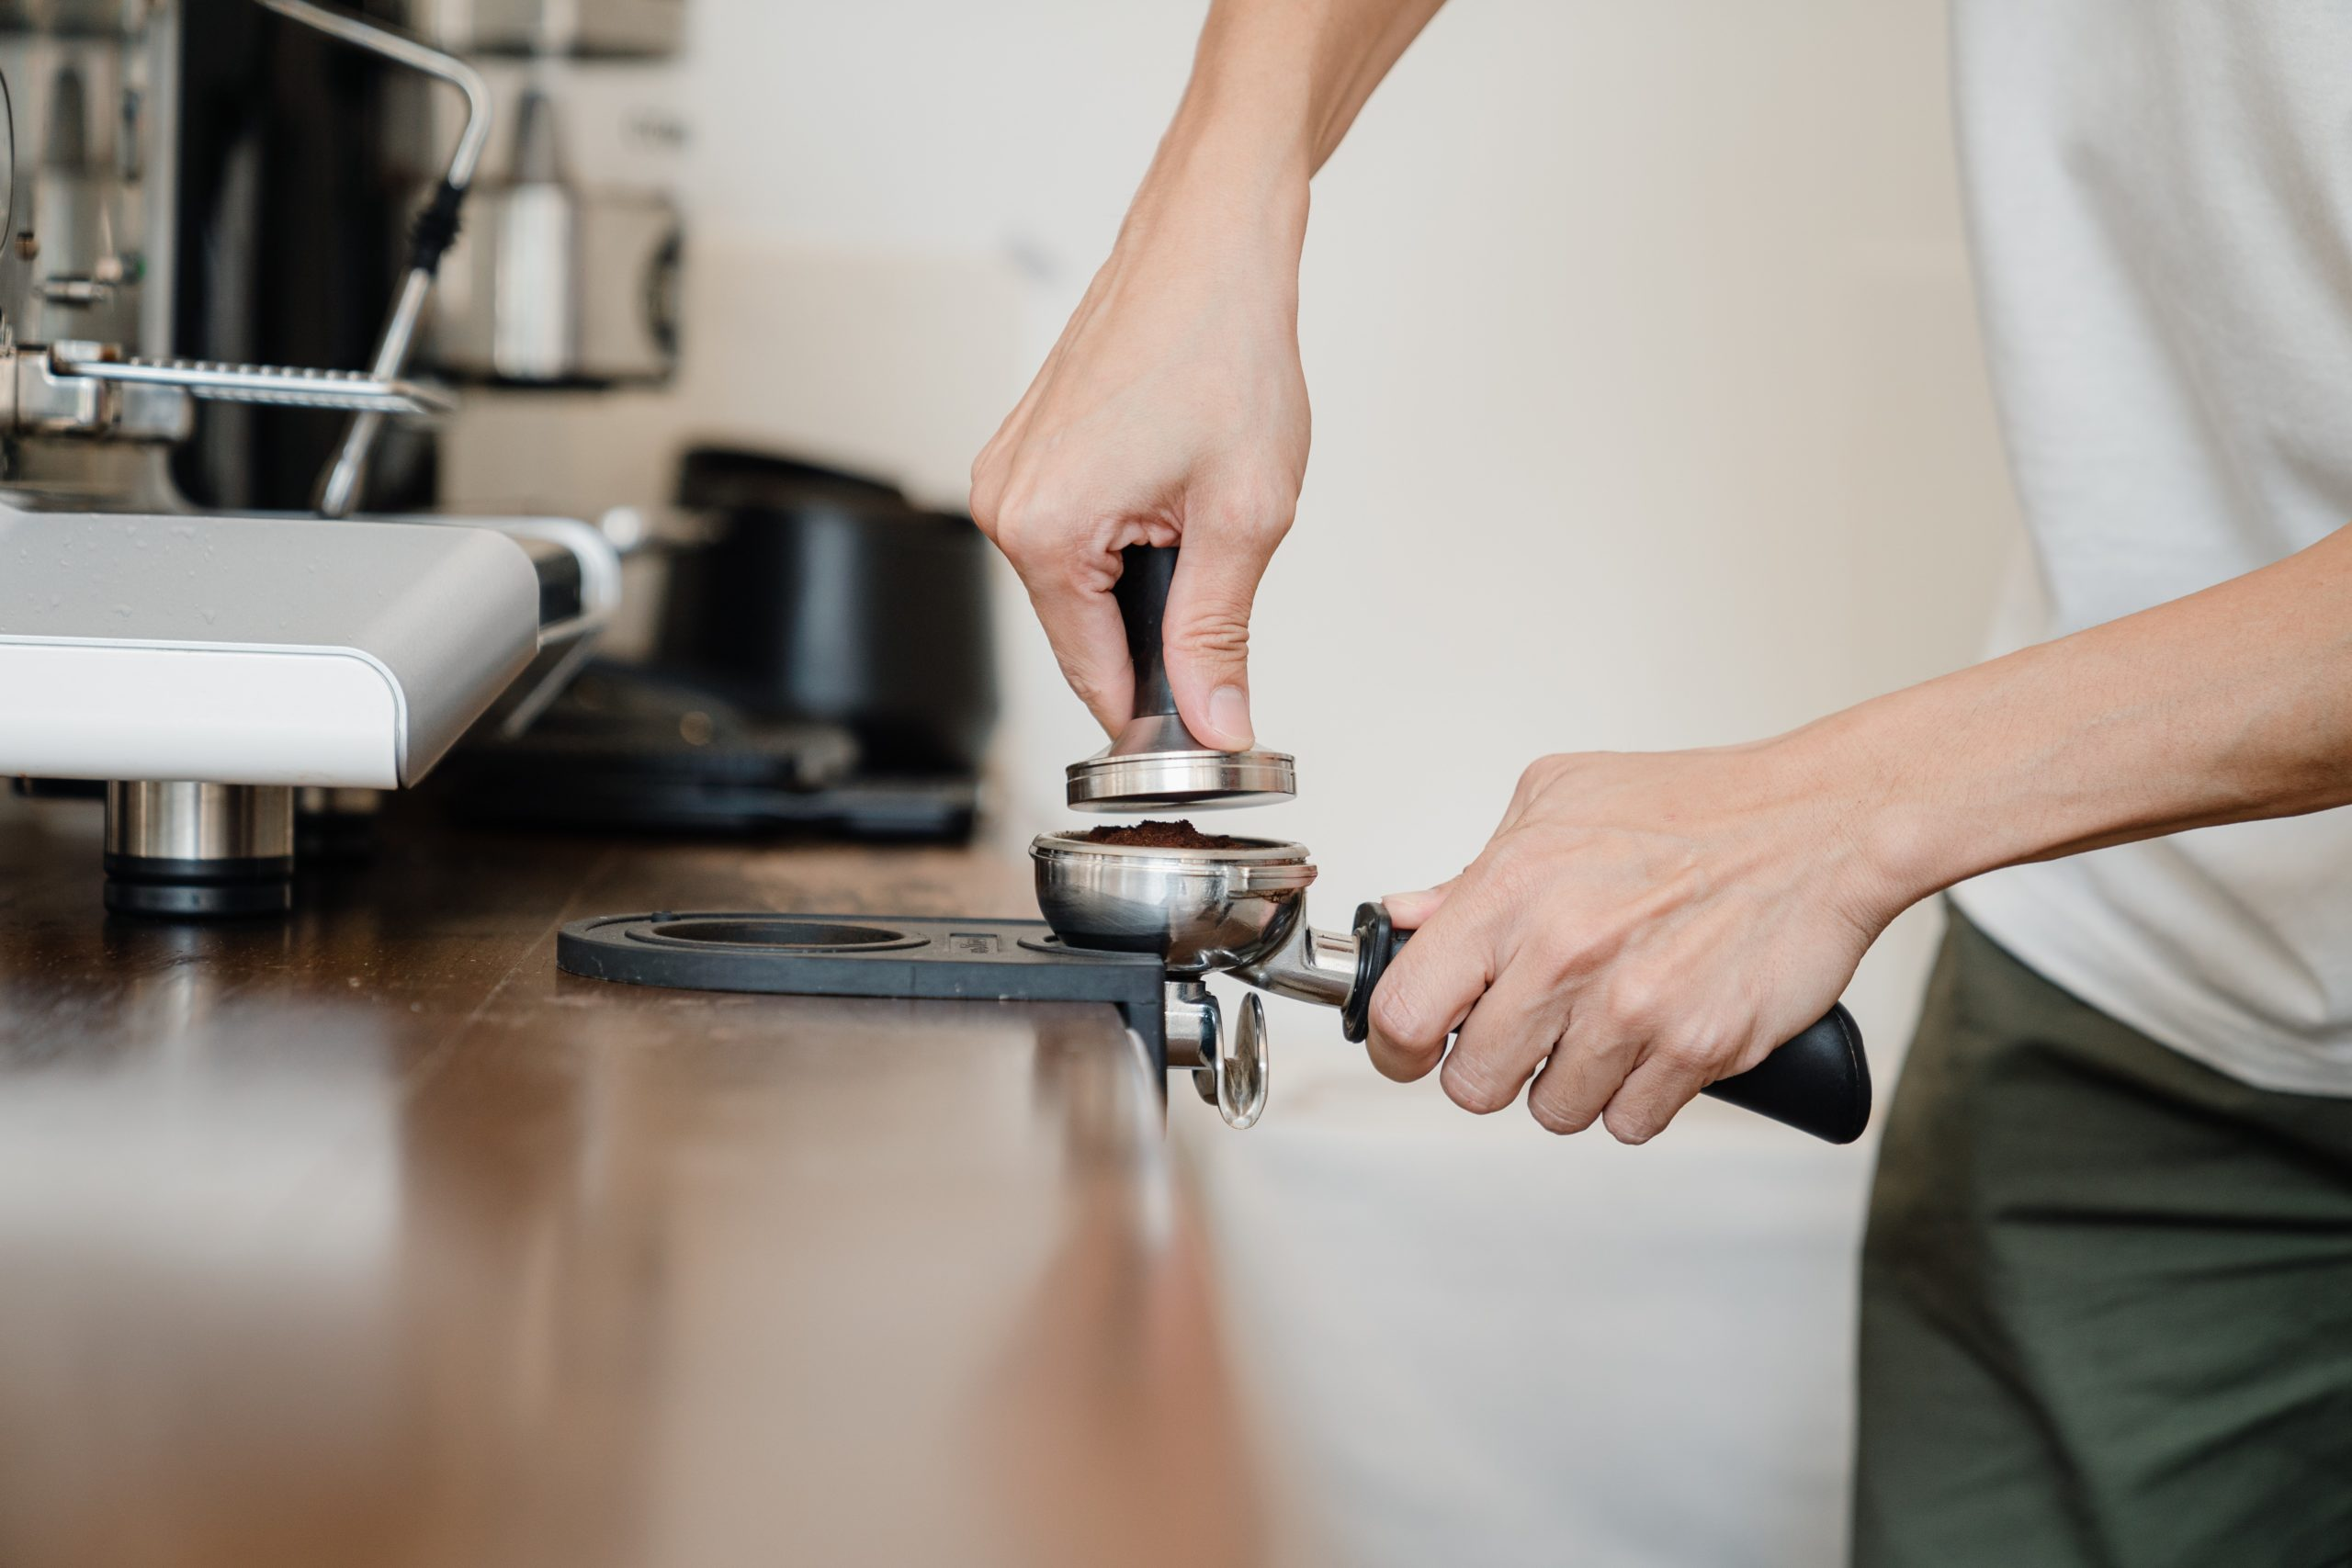 a person tamping coffee